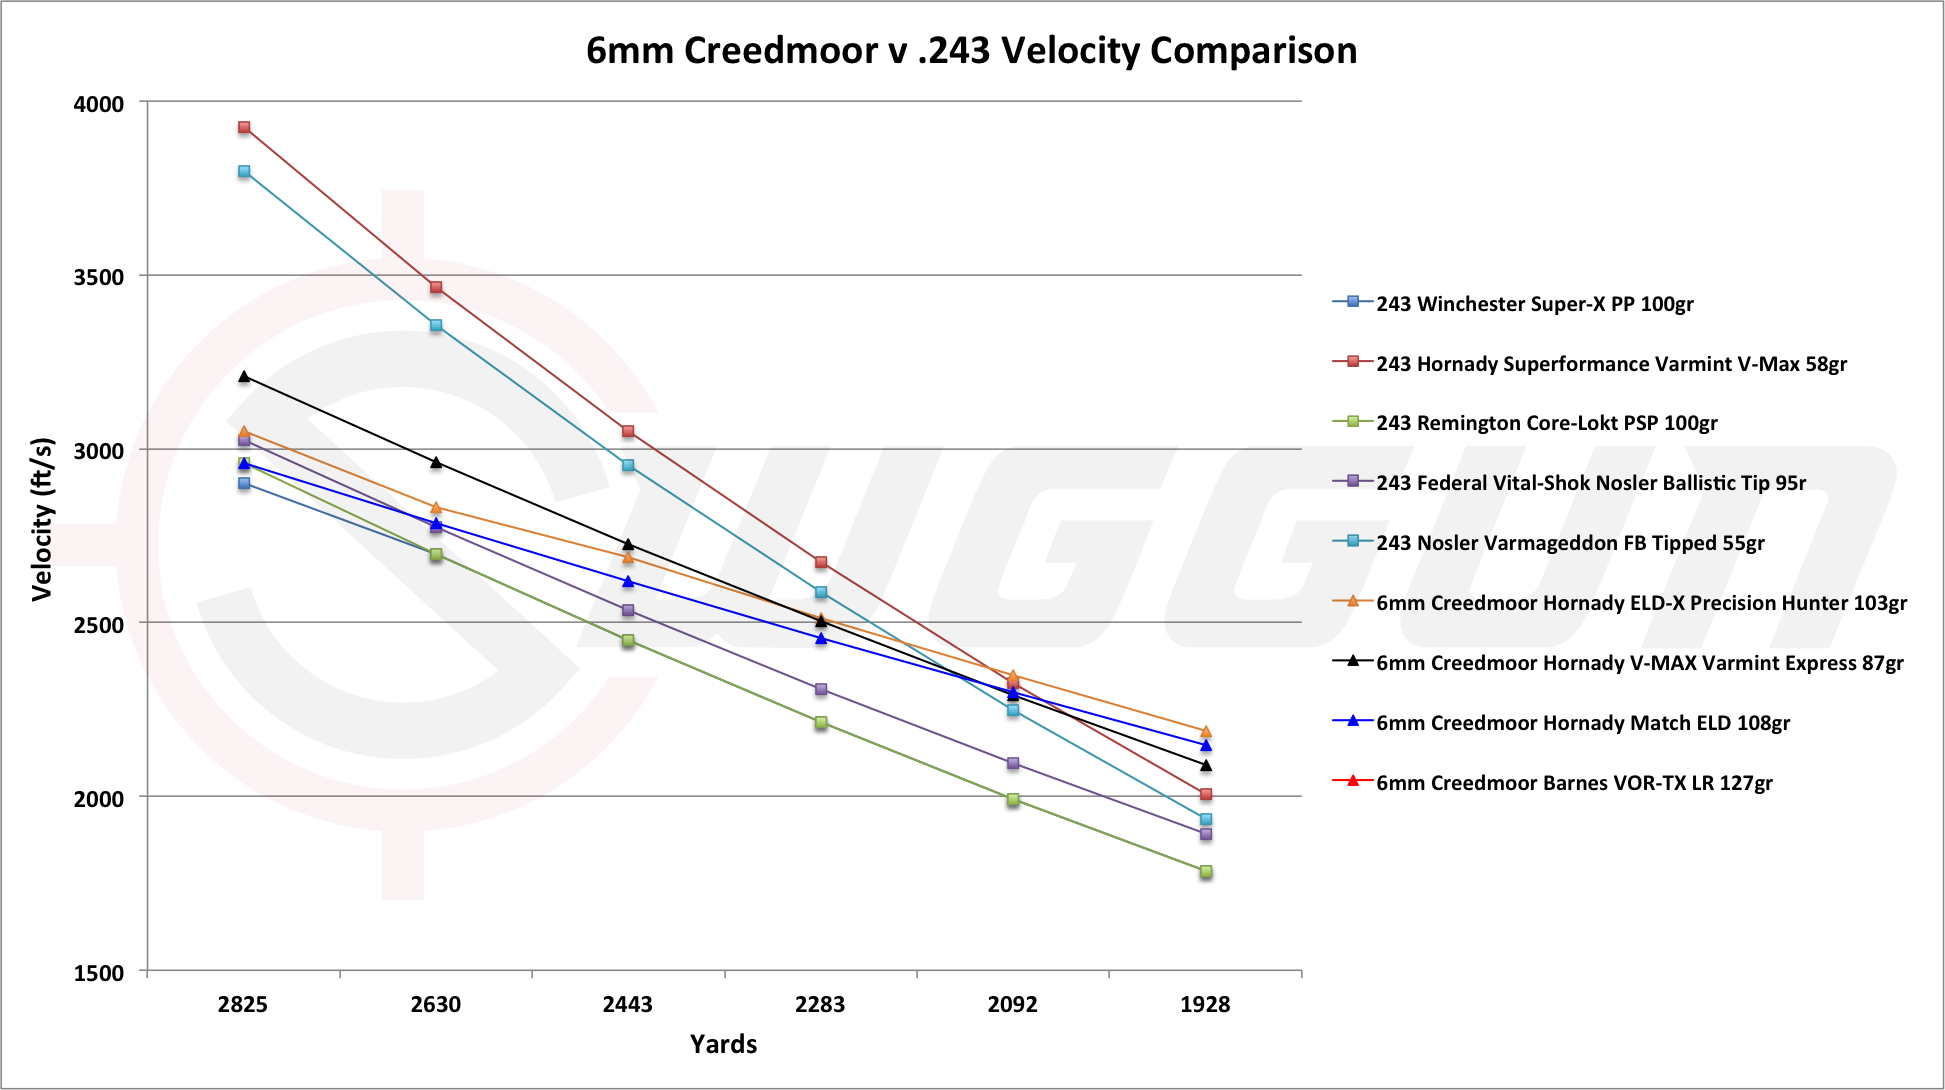 velocity comparison of the 243 vs the 6mm Creedmoor